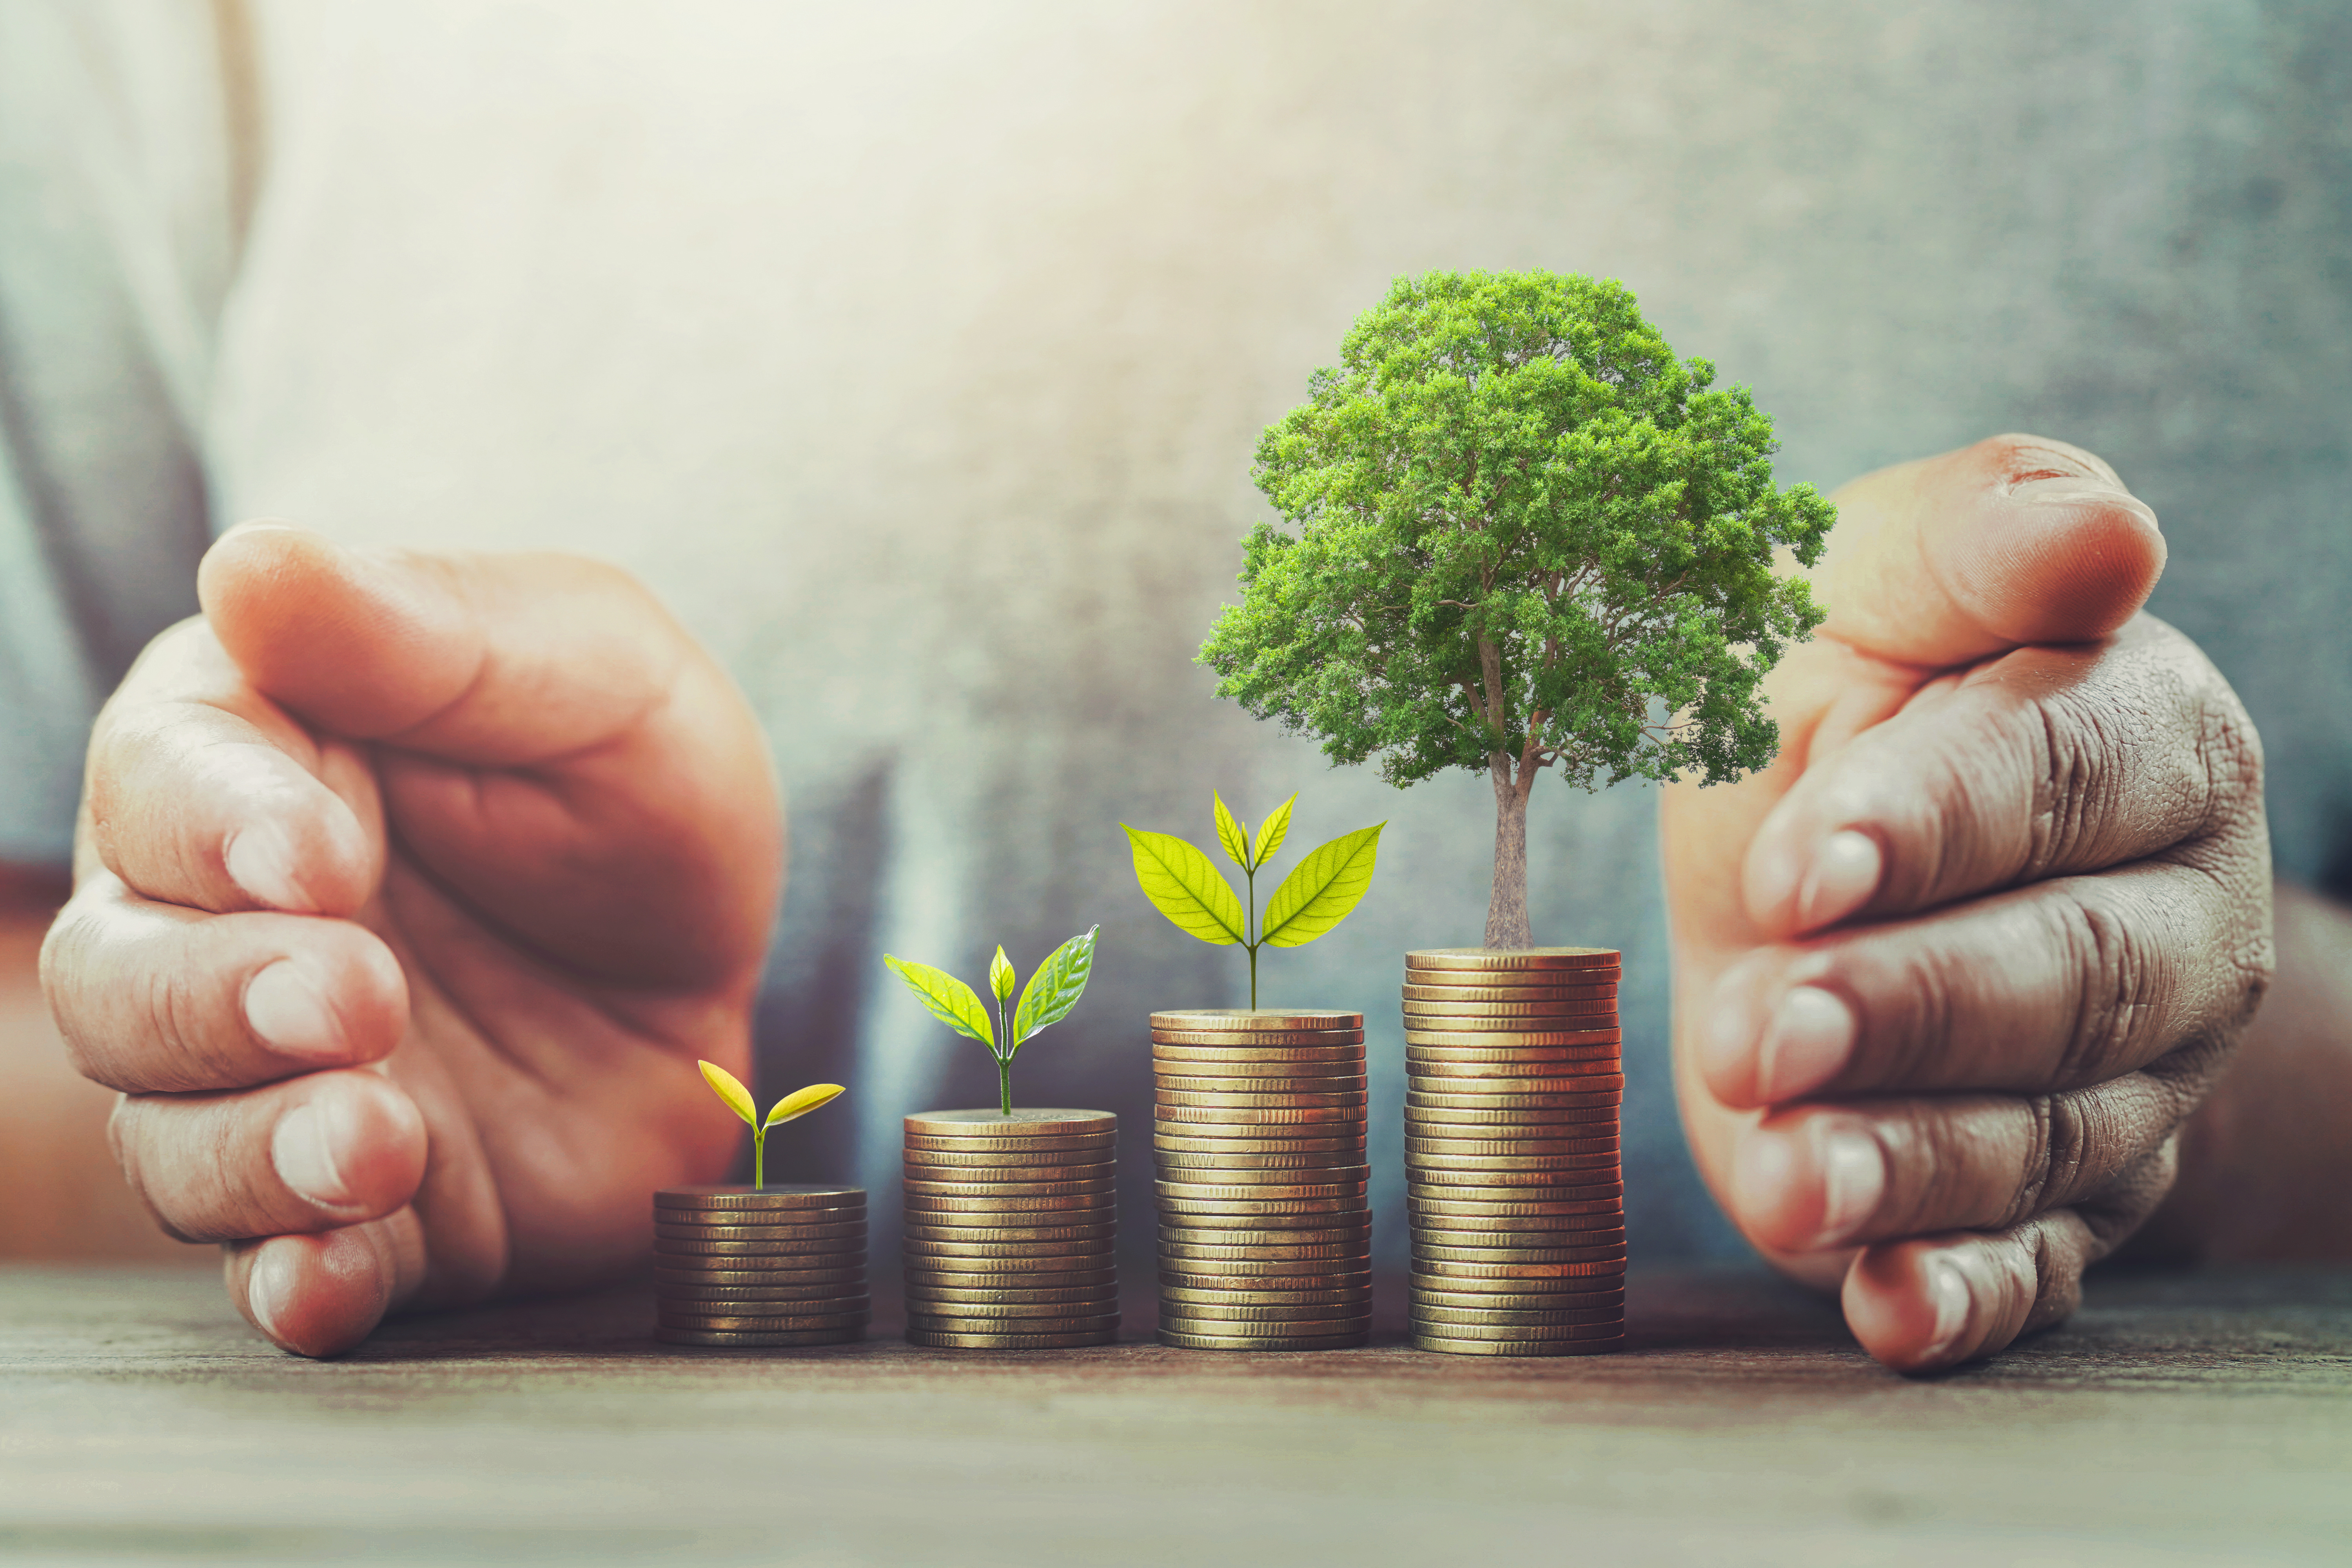 businessman protection money on table with tree. Earthworm Group concept